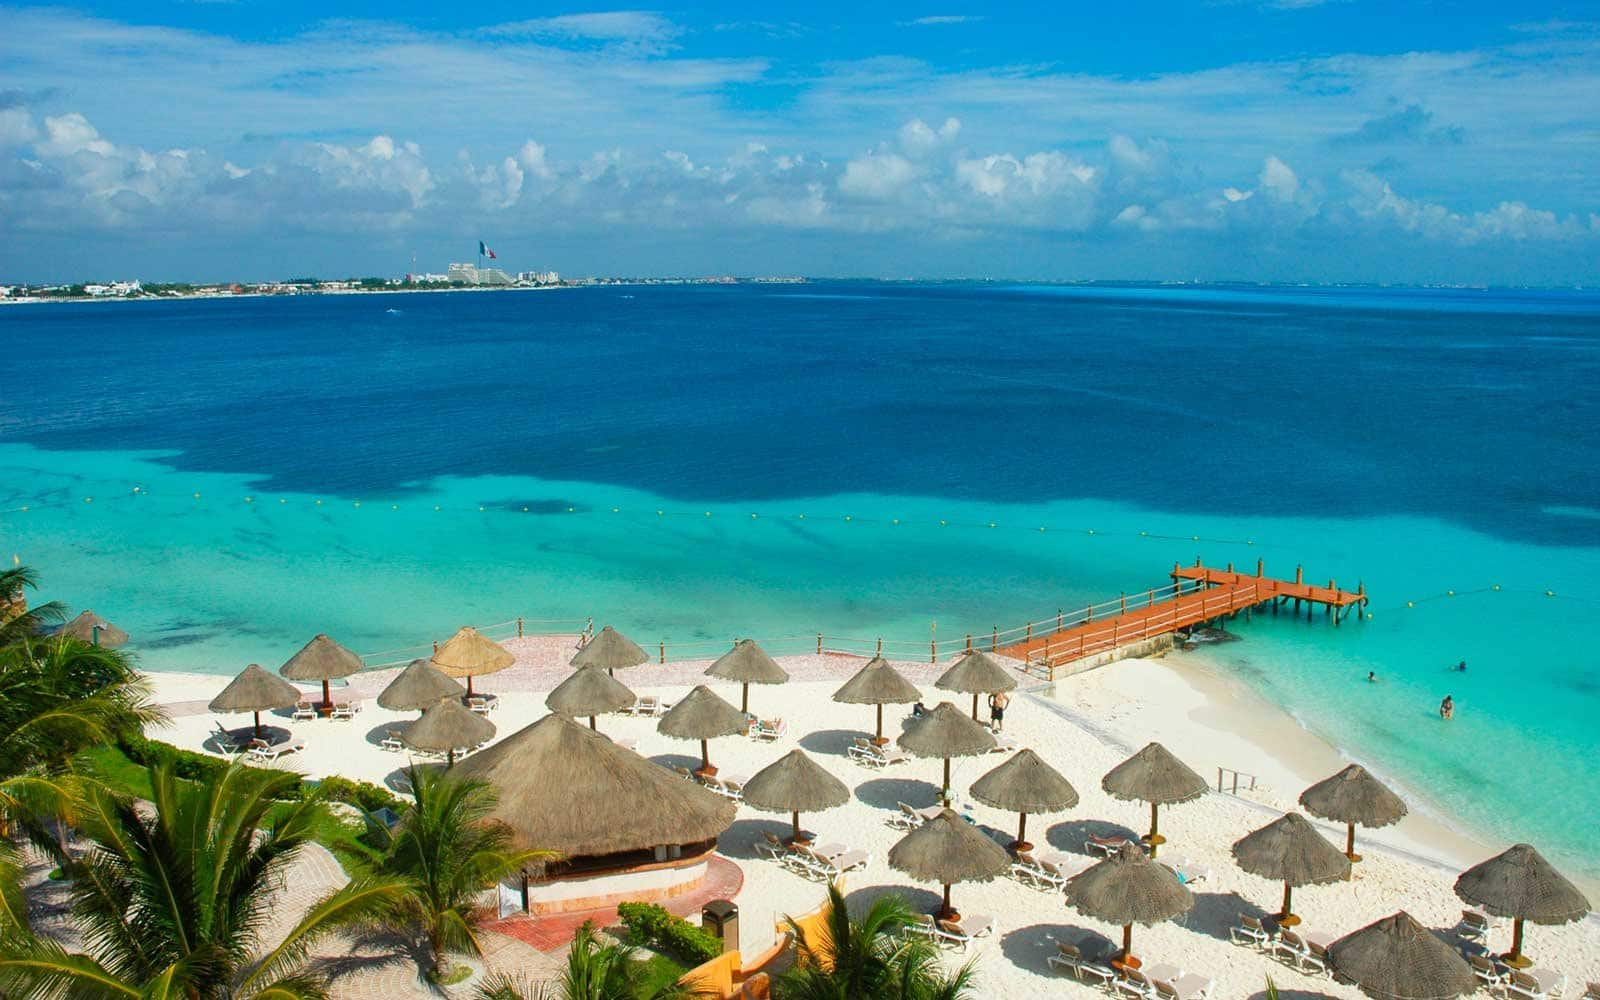 Orlando FL to Cancun Mexico $192 RT Nonstop Airfares on Frontier Airlines (Travel August - April 2022)